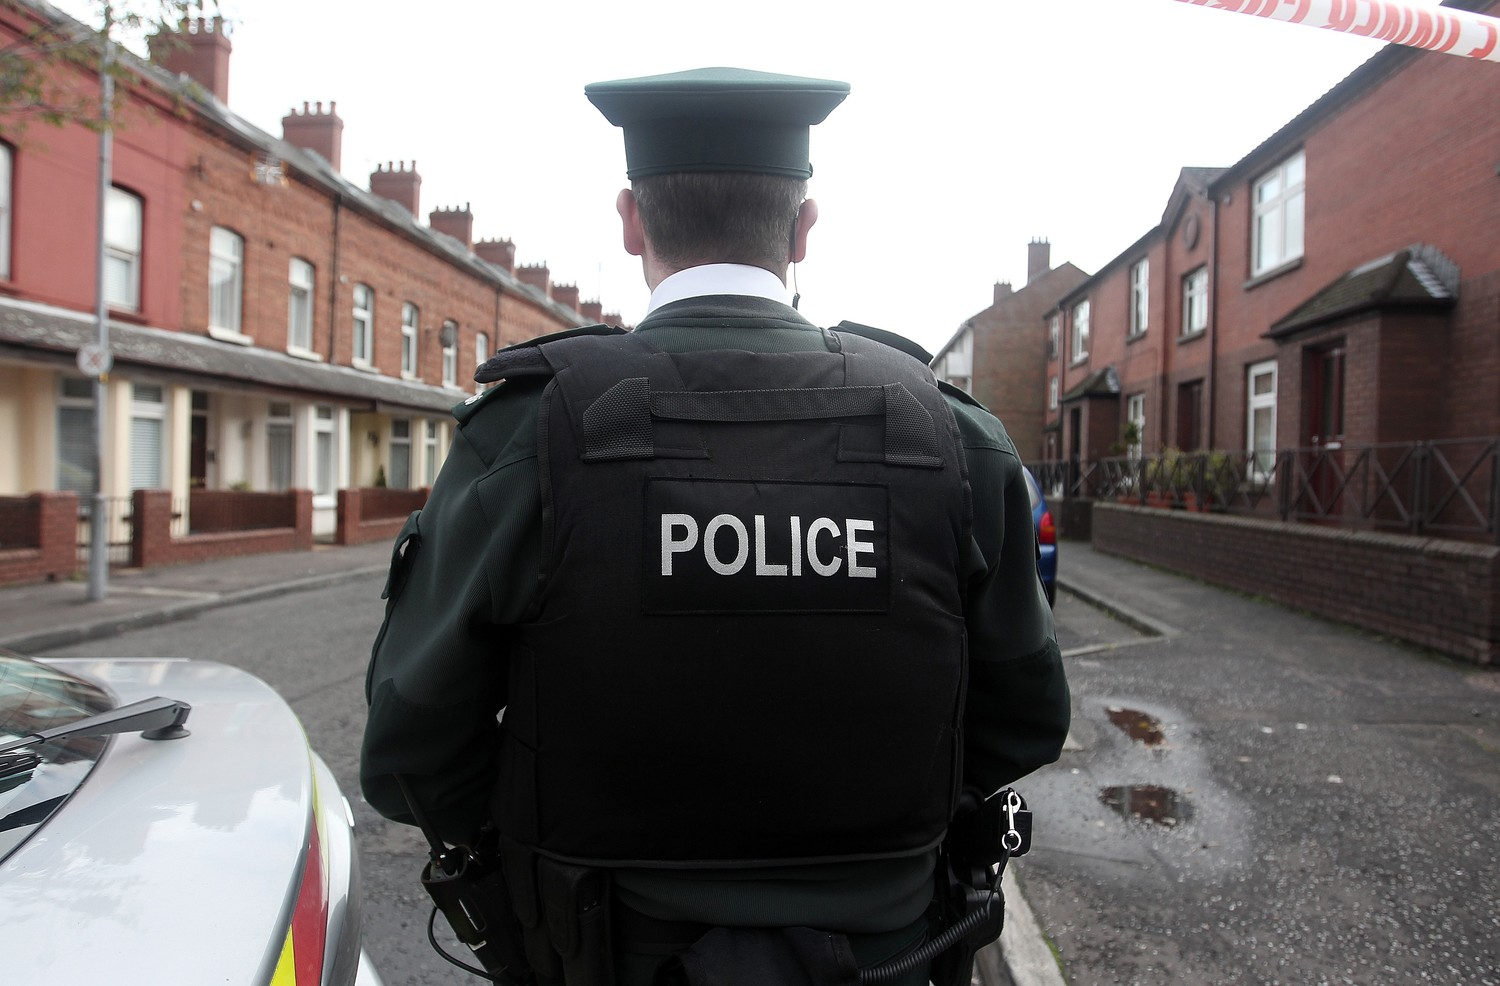 CJI report raises concerns that police still filling civilian roles within PSNI